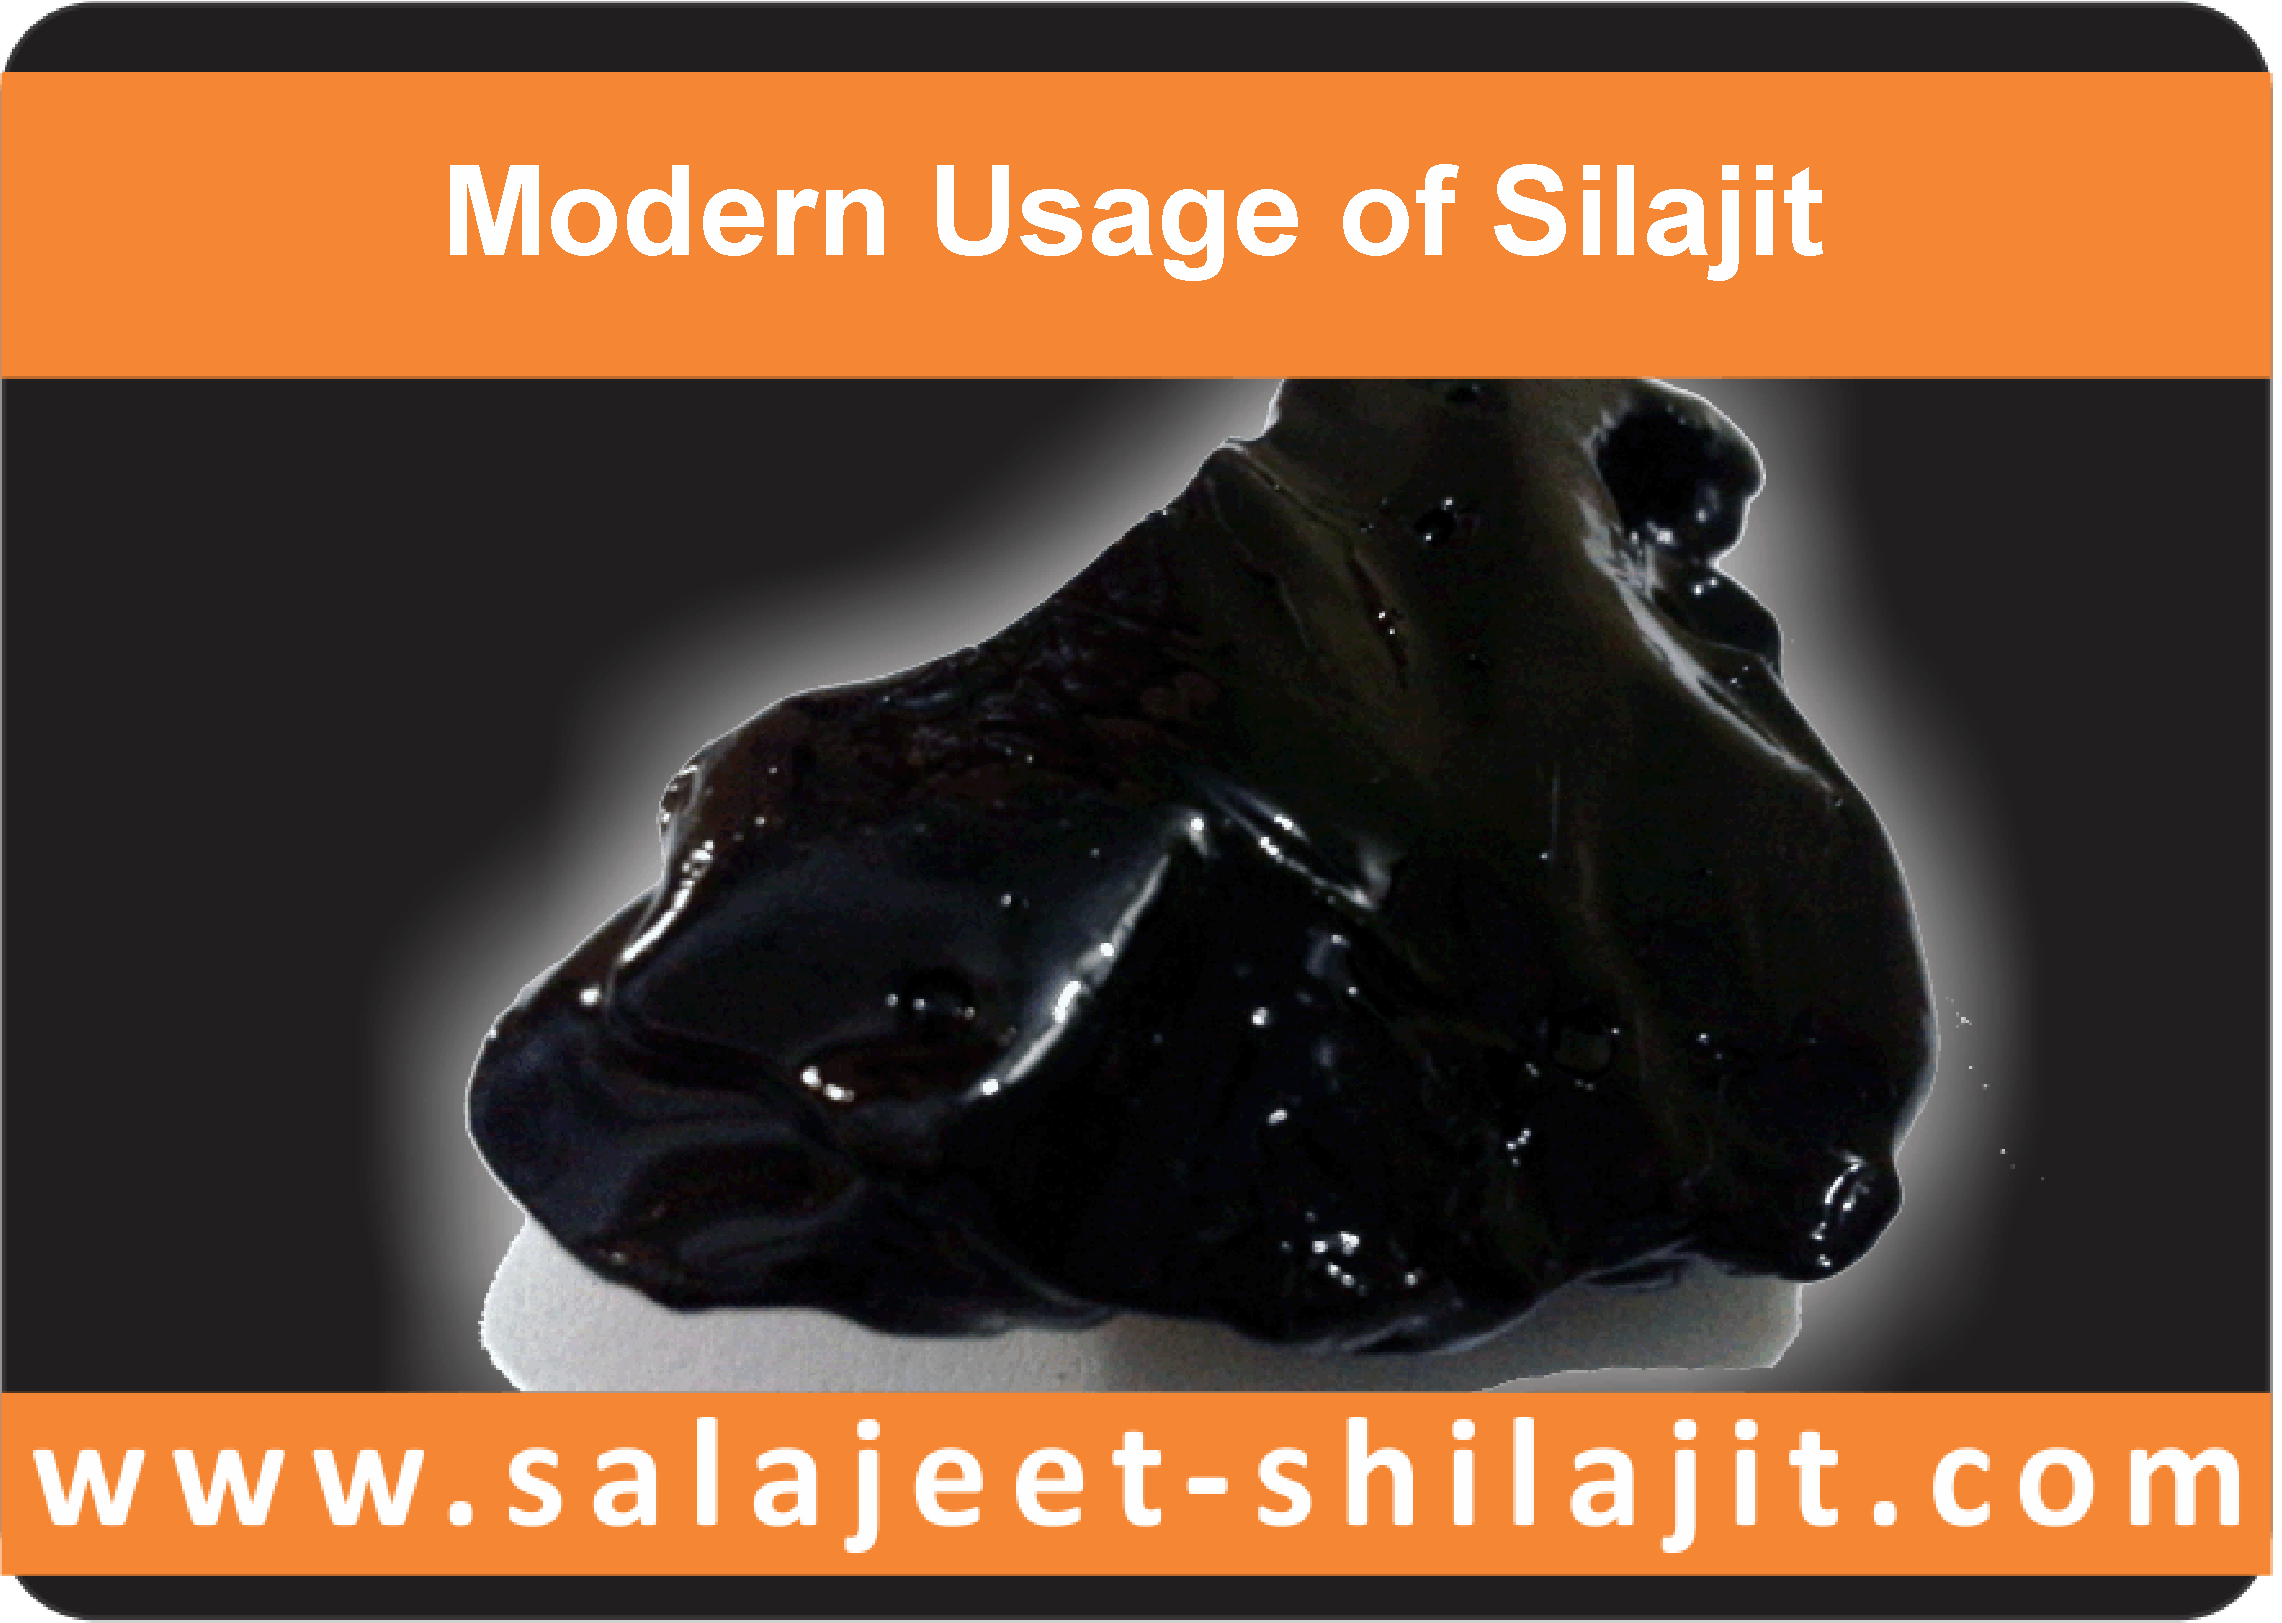 Modern usage of silajit